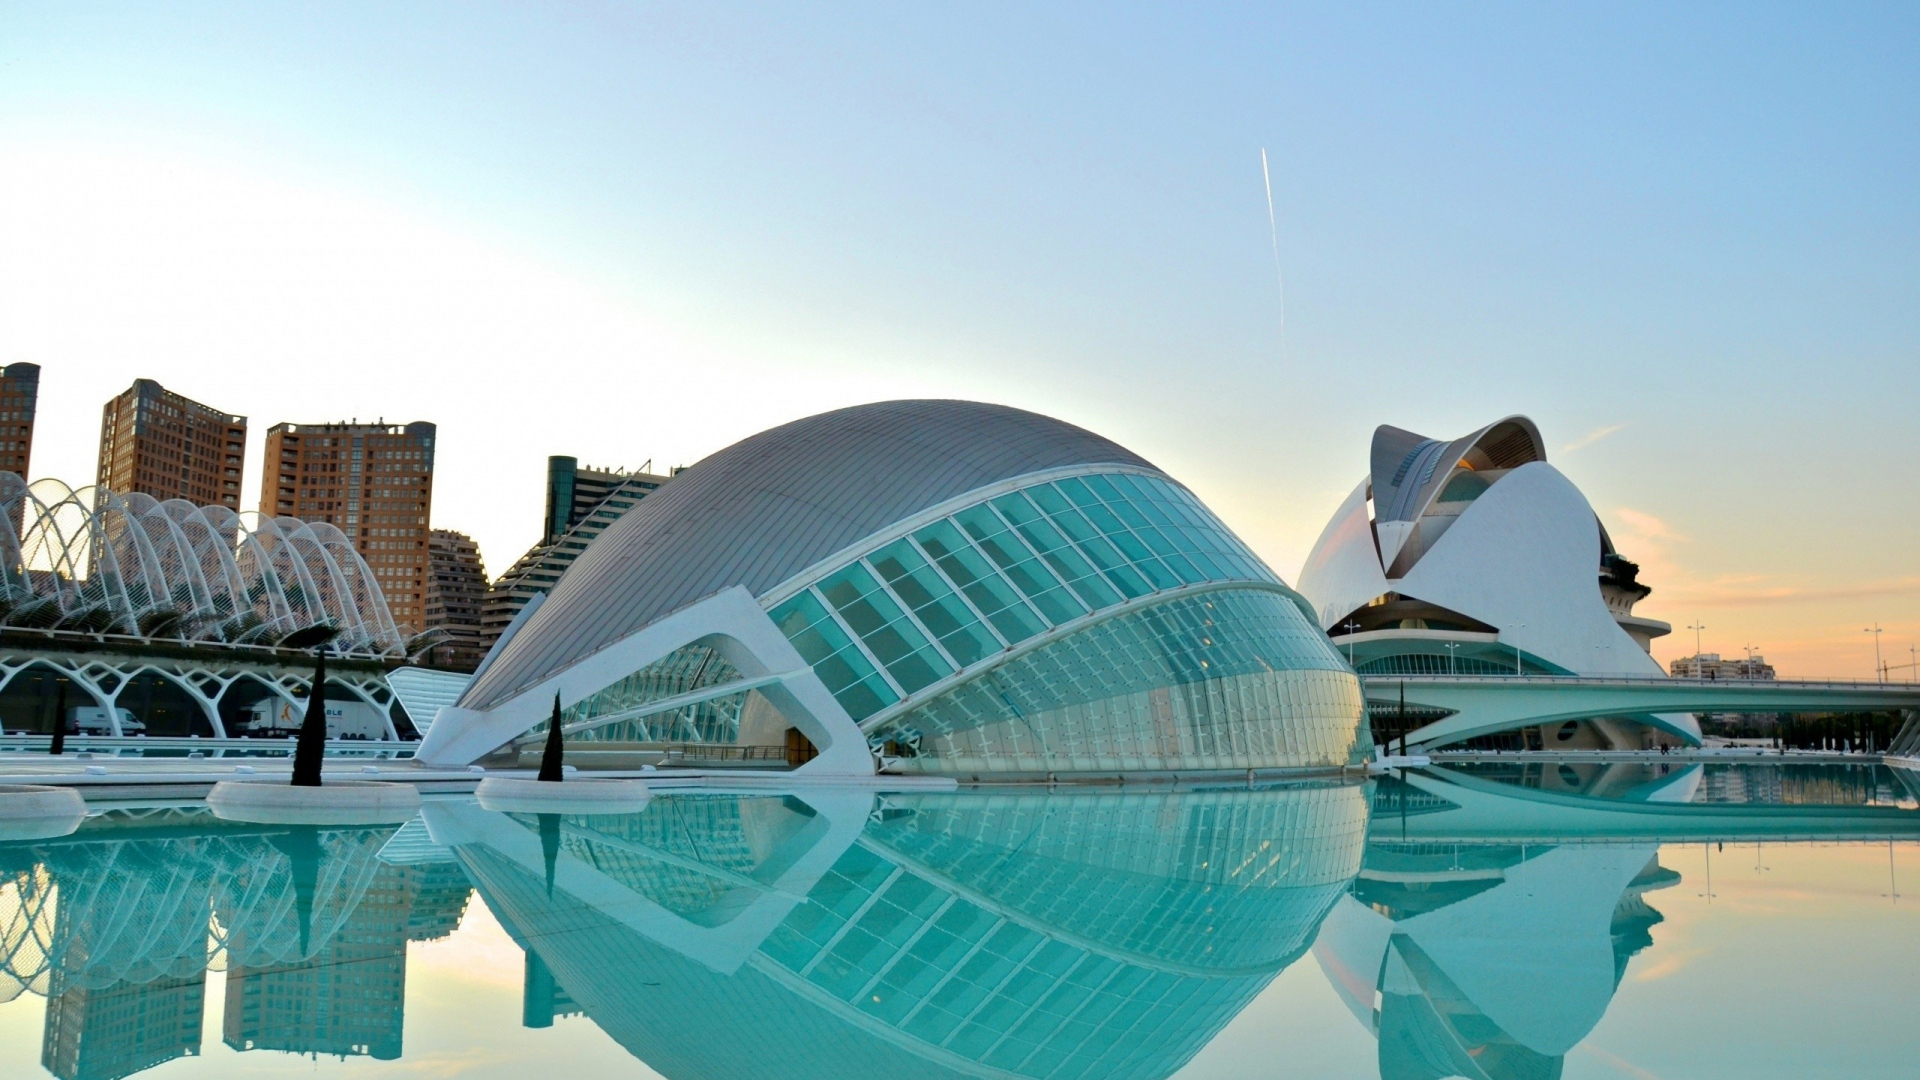 Download Wallpaper 1920x1080 Valencia, Architecture